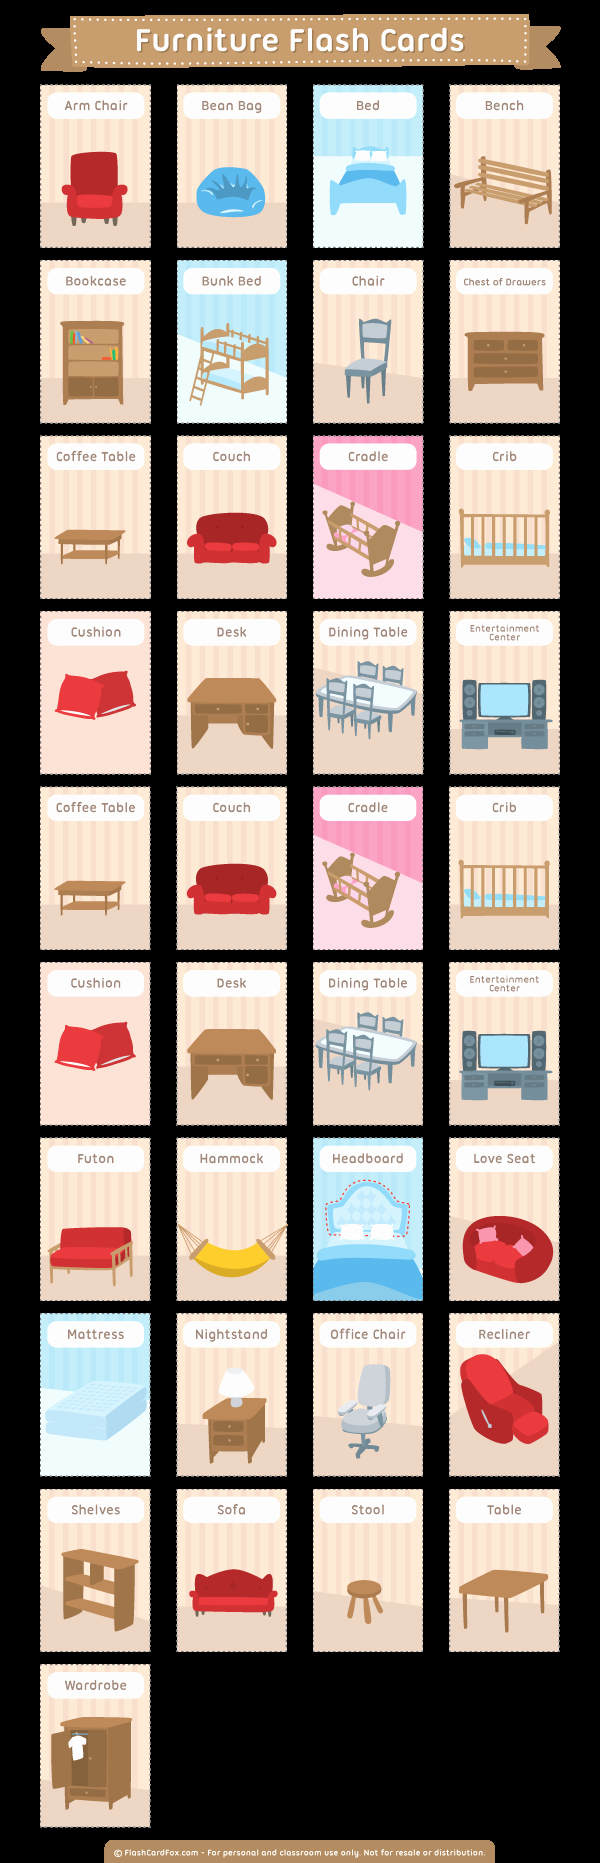 Flash Card Template Pdf Best Of Pin by Muse Printables On Flash Cards at Flashcardfox